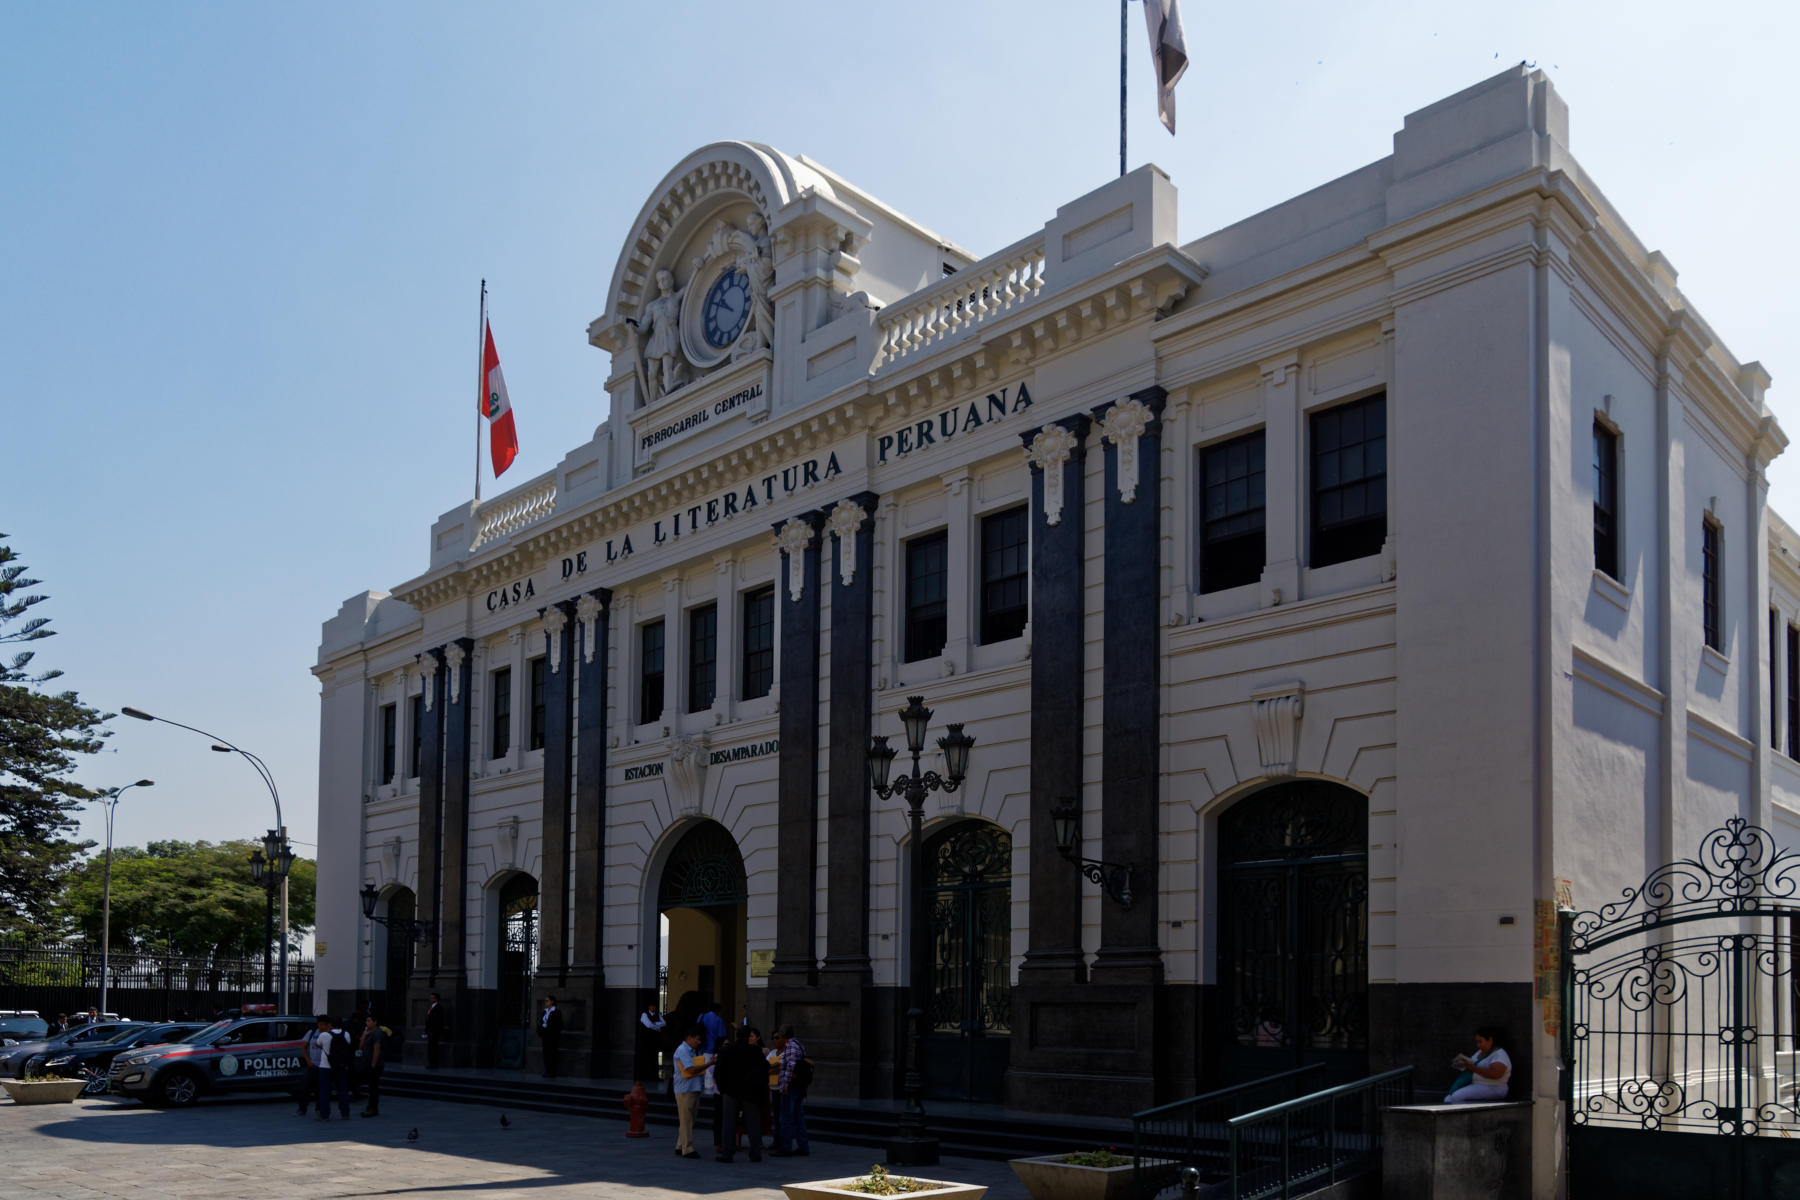 The old railway station in Lima